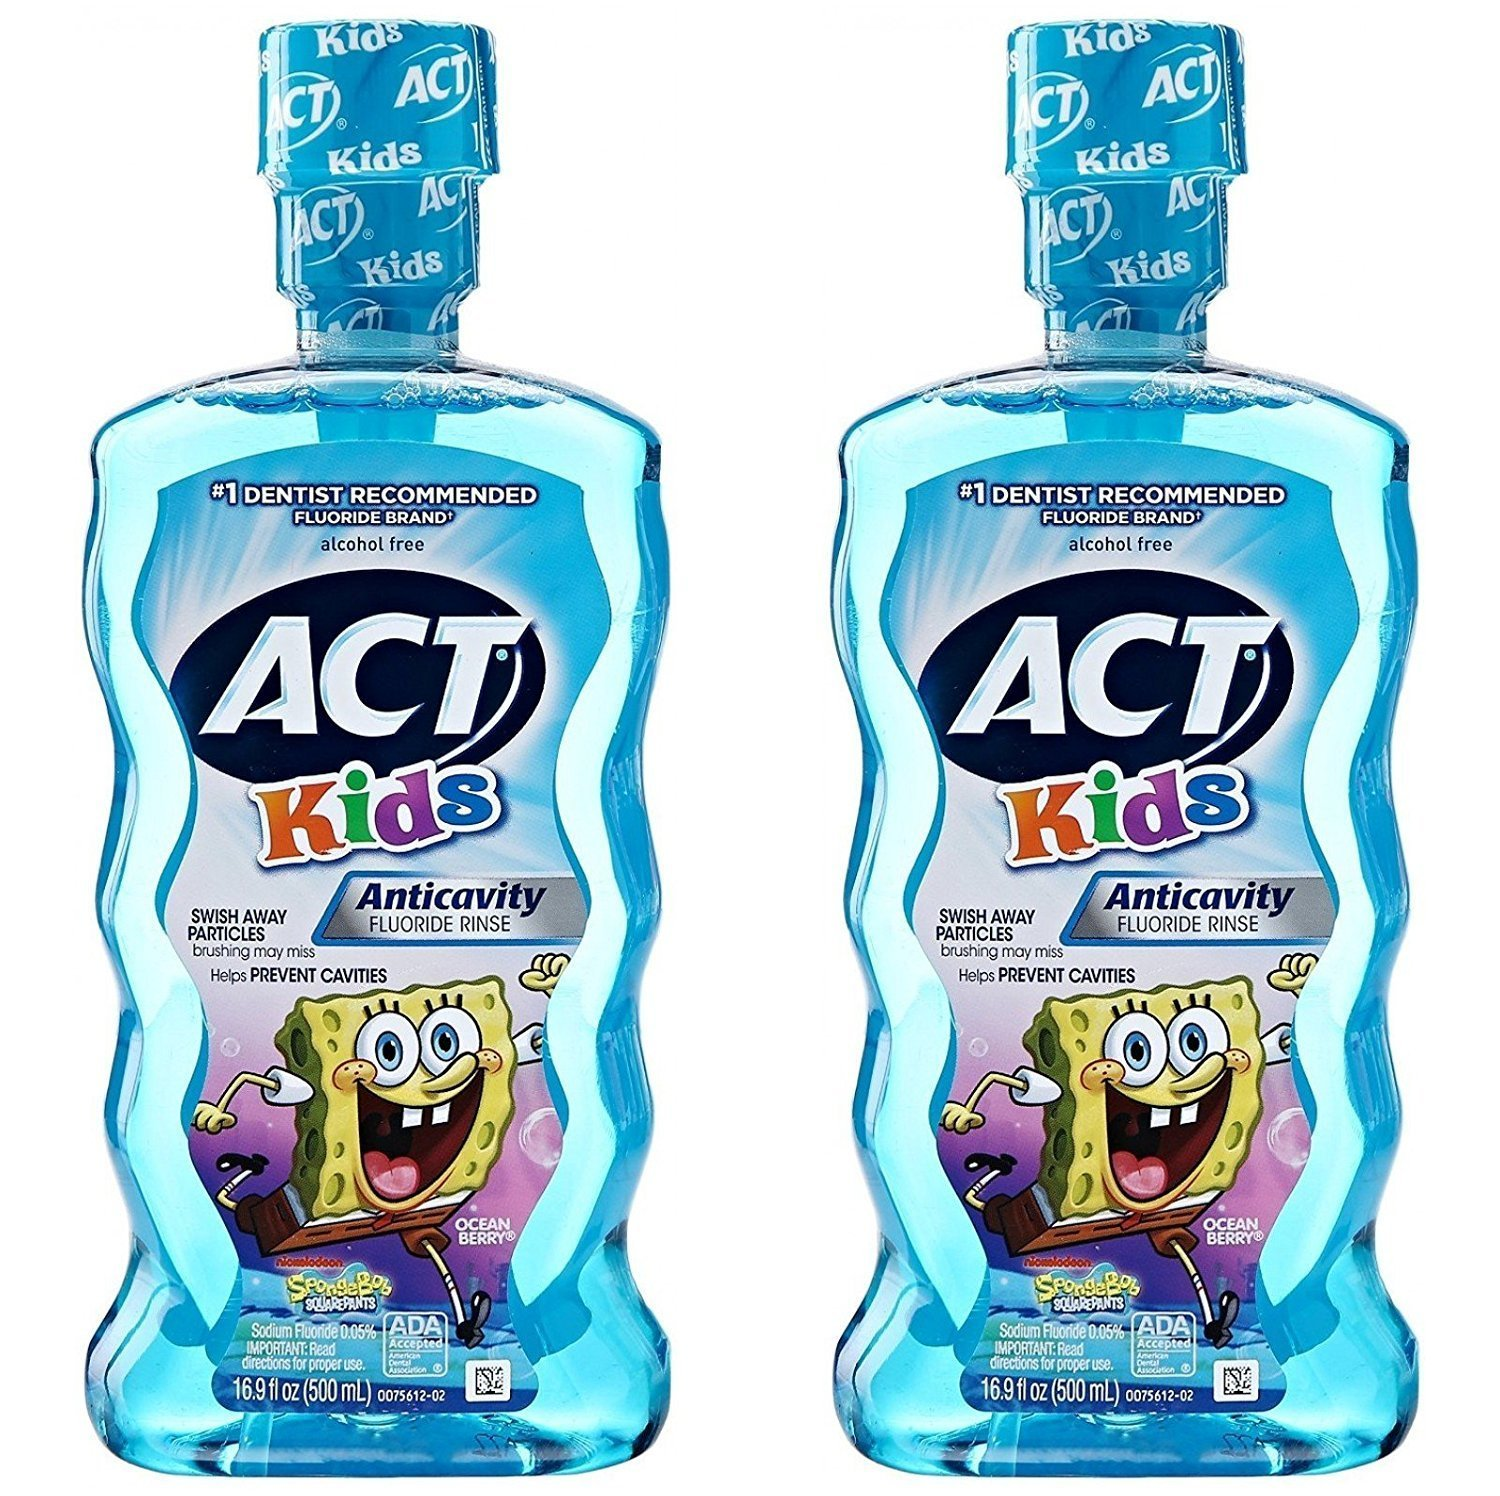 ACT Kids Anti-Cavity Mouthwash, Sponge Bob Squarepants, 16.9 oz. (Pack